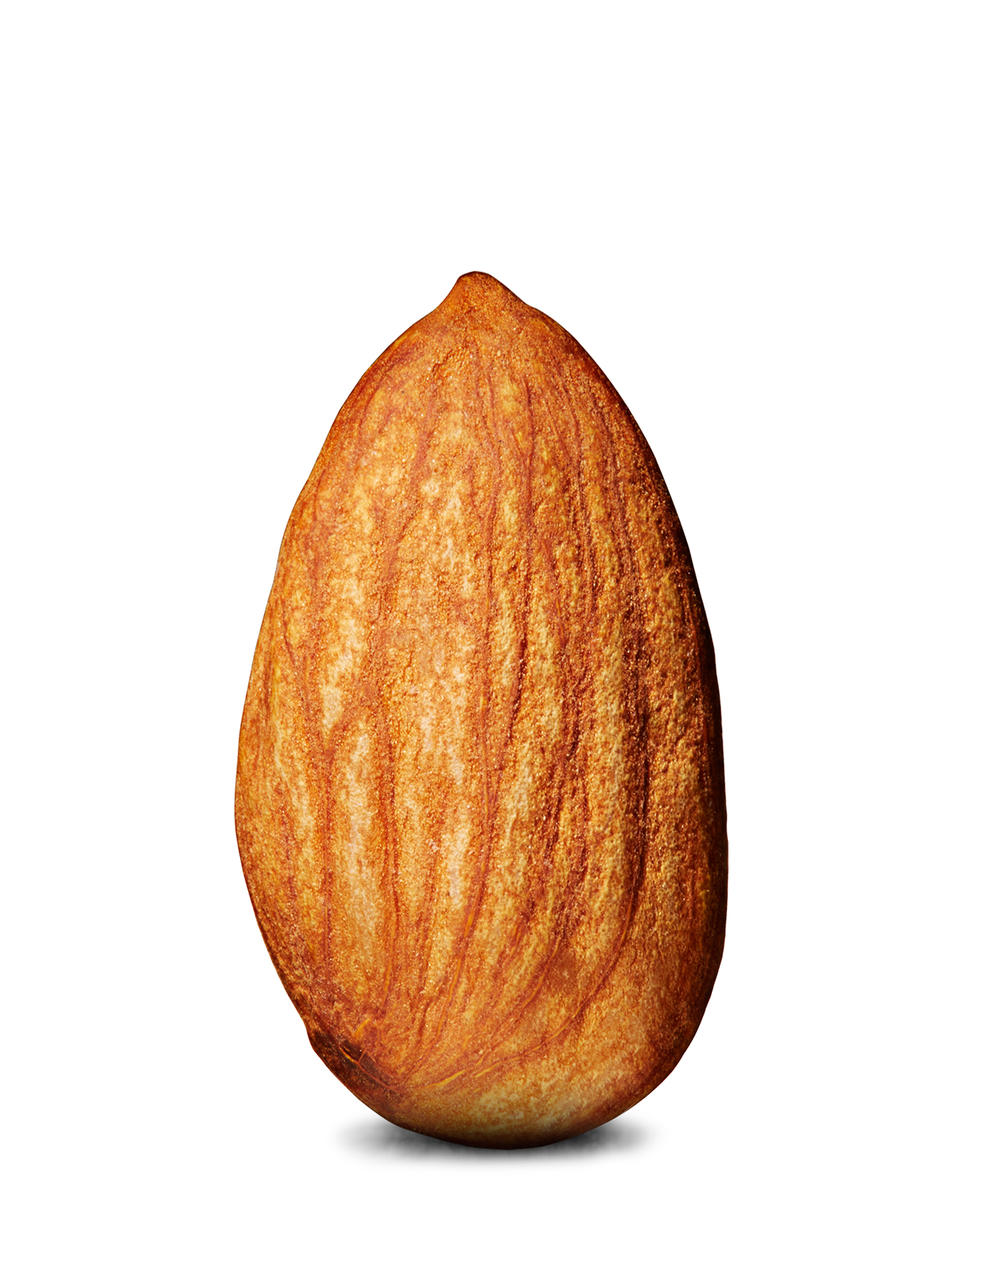 Almond Nut Png image #32799 - Almond PNG